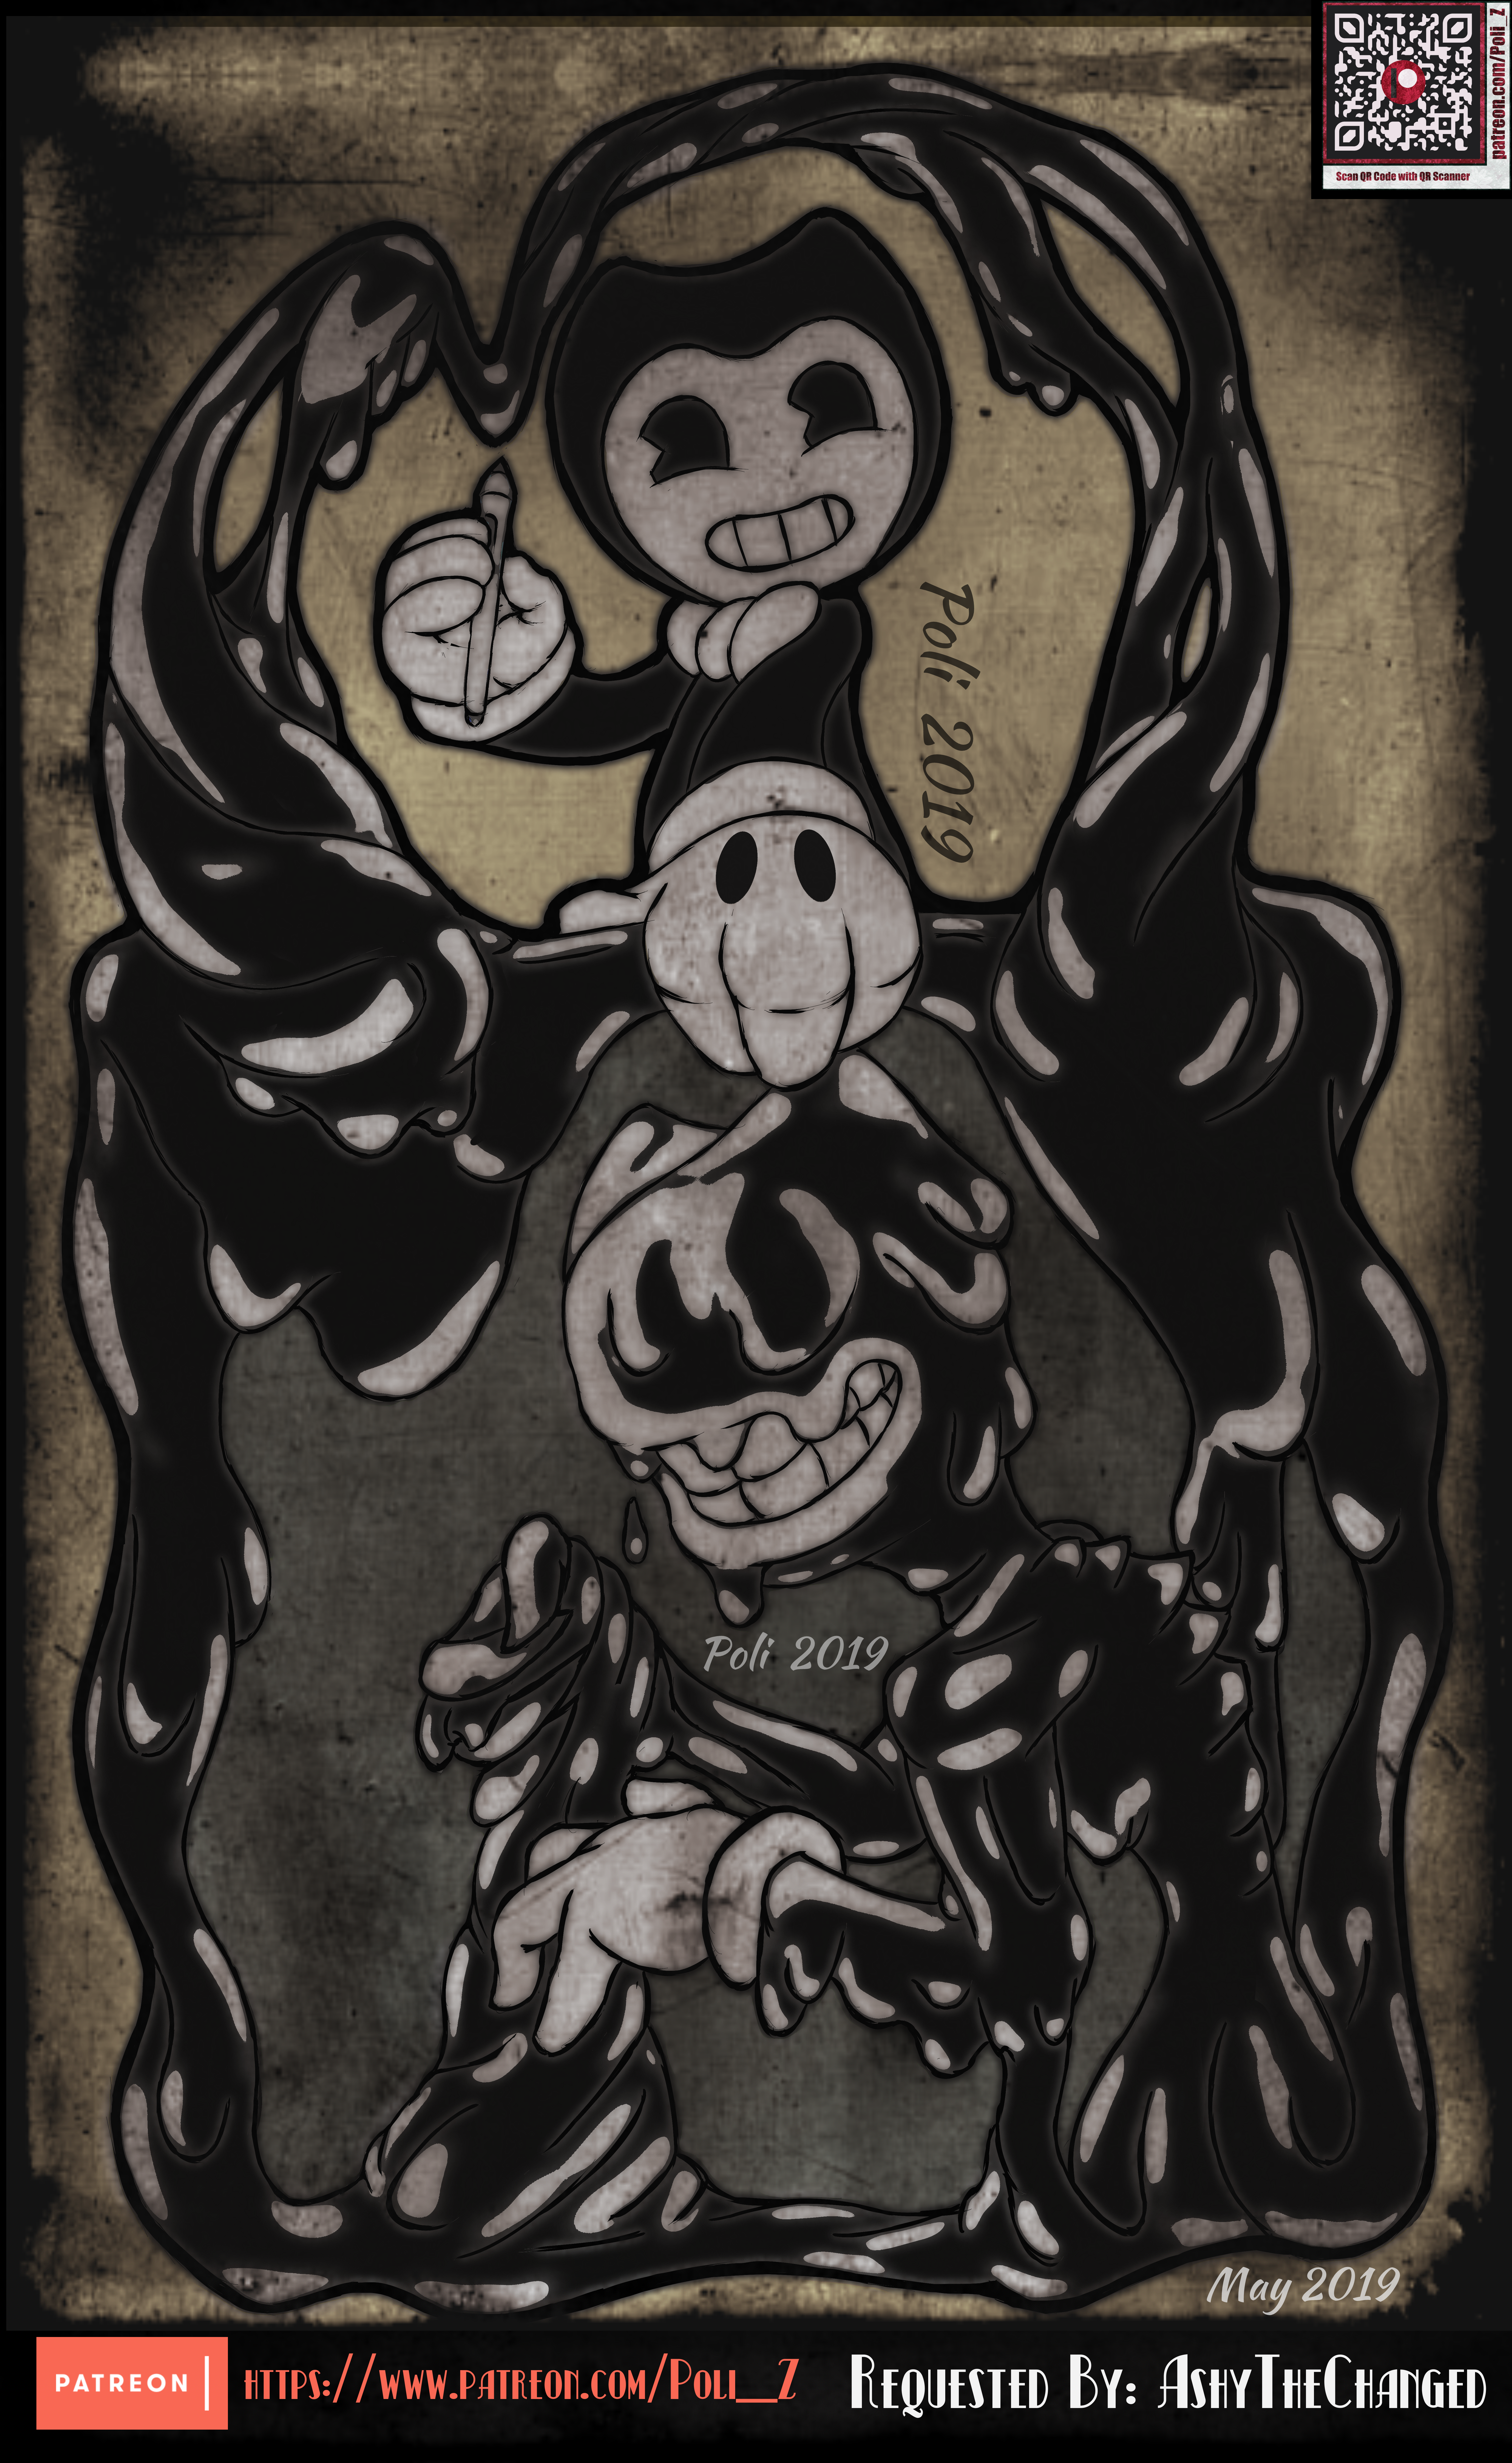 Patreon Artwork: Bendy The Ink Demon